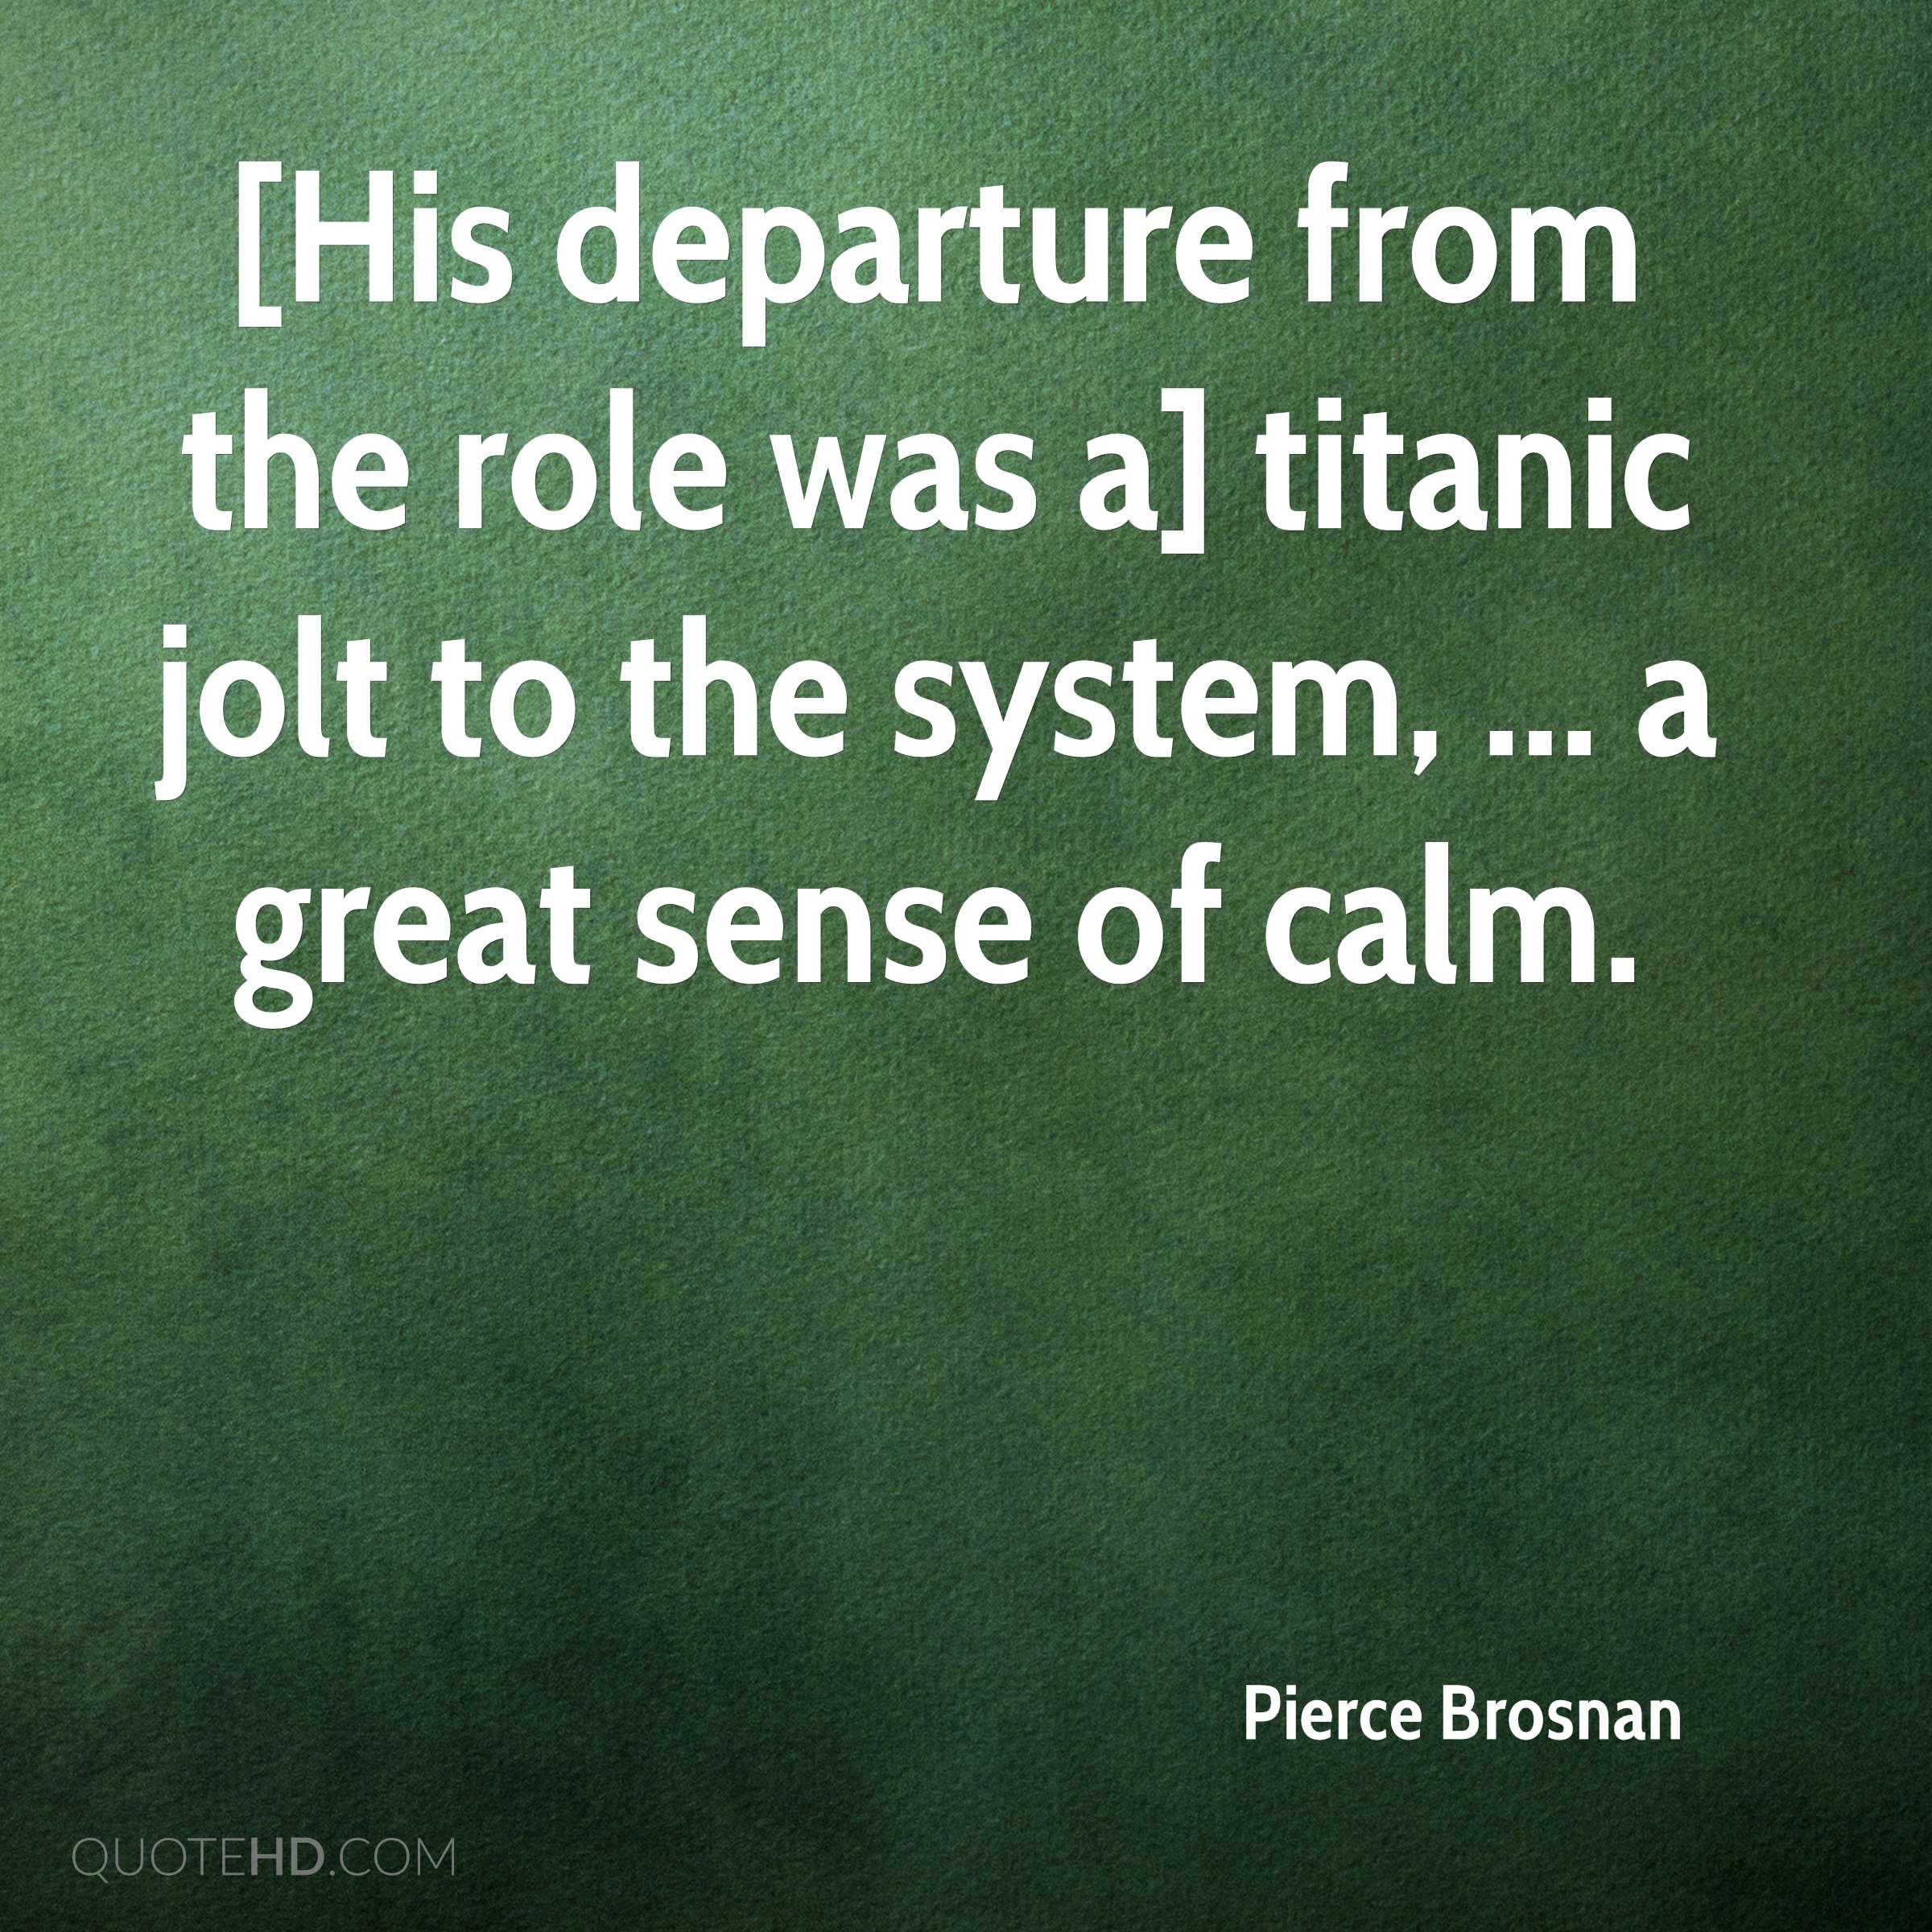 [His departure from the role was a] titanic jolt to the system, ... a great sense of calm.